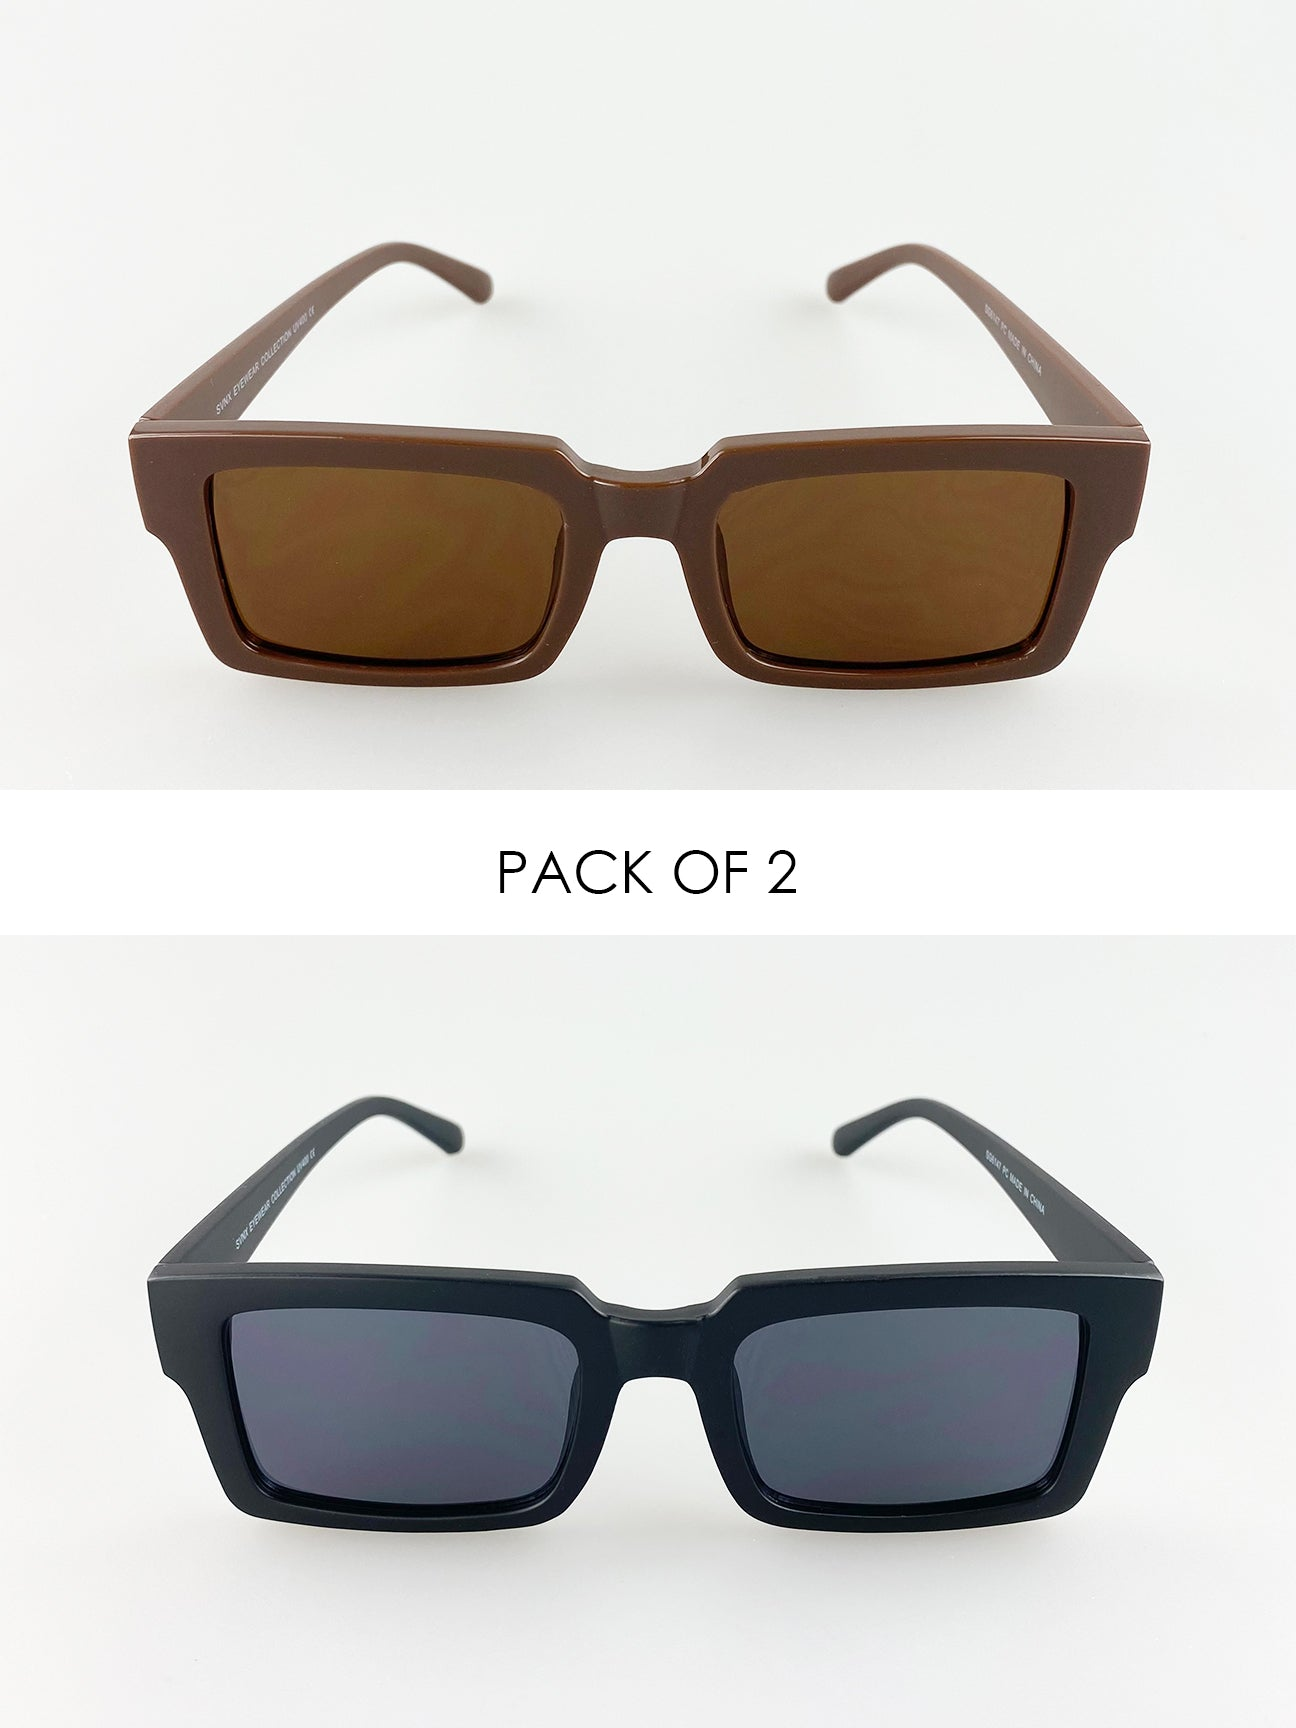 2 Pack Square Sunglasses In Black And Light Brown